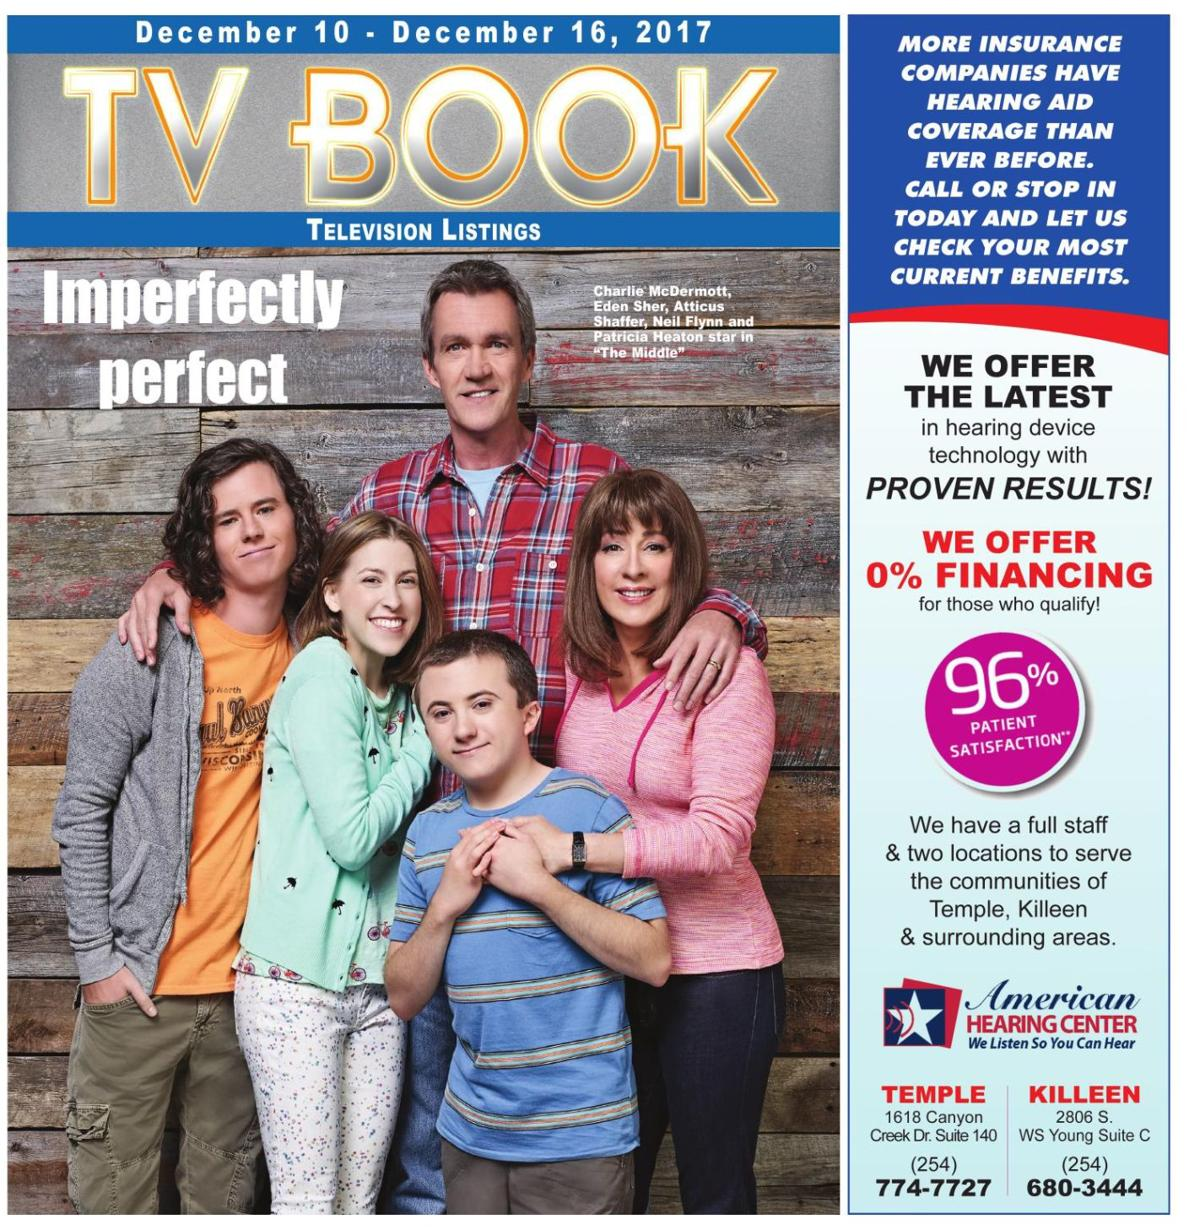 TV Book Dec. 10th - Dec. 16th